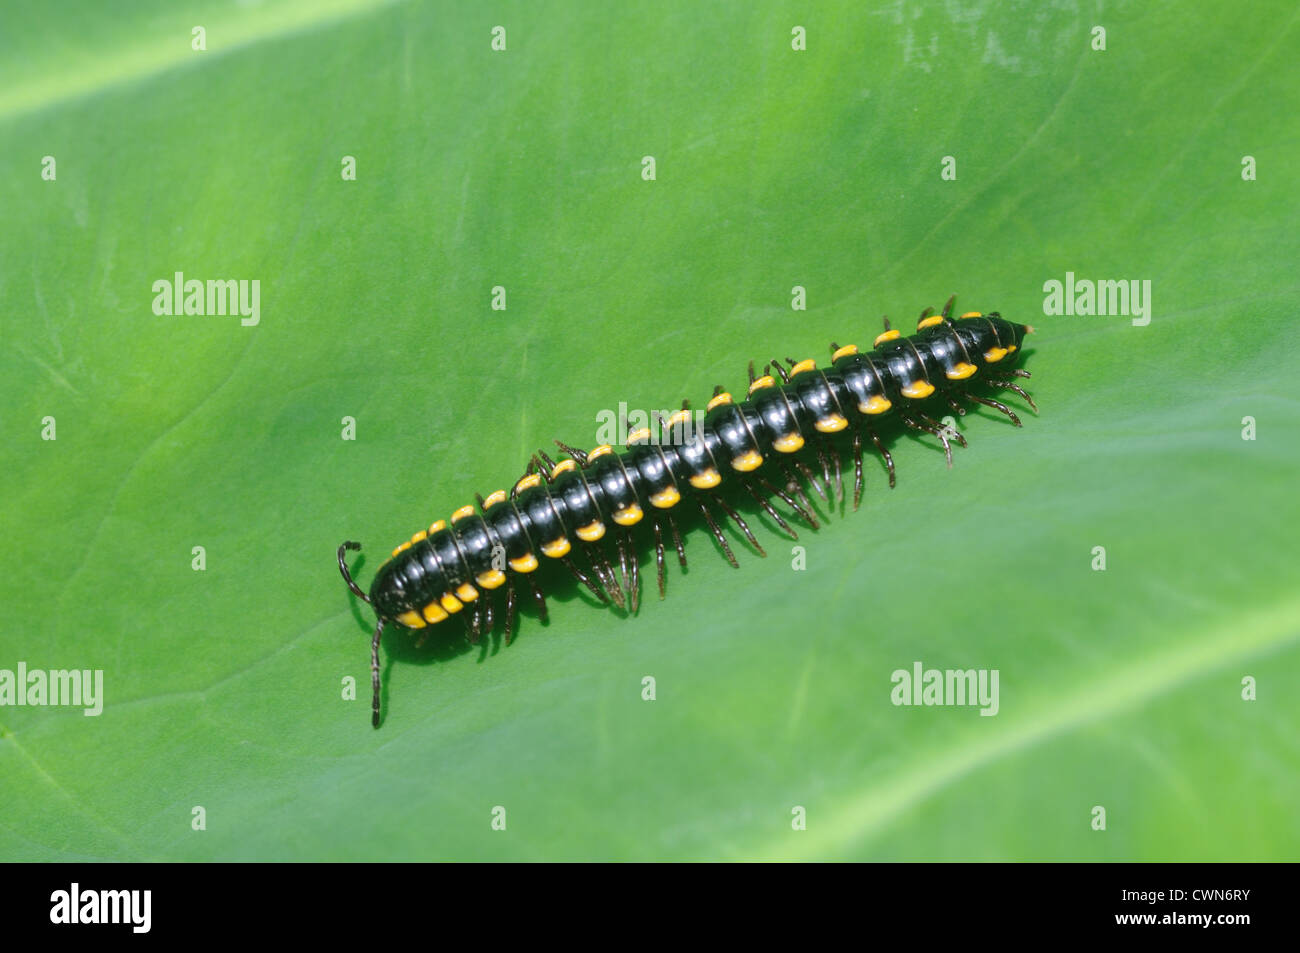 Millipede Millipedes are arthropods that have two pairs of legs per segment except for the first segment behind - Stock Image